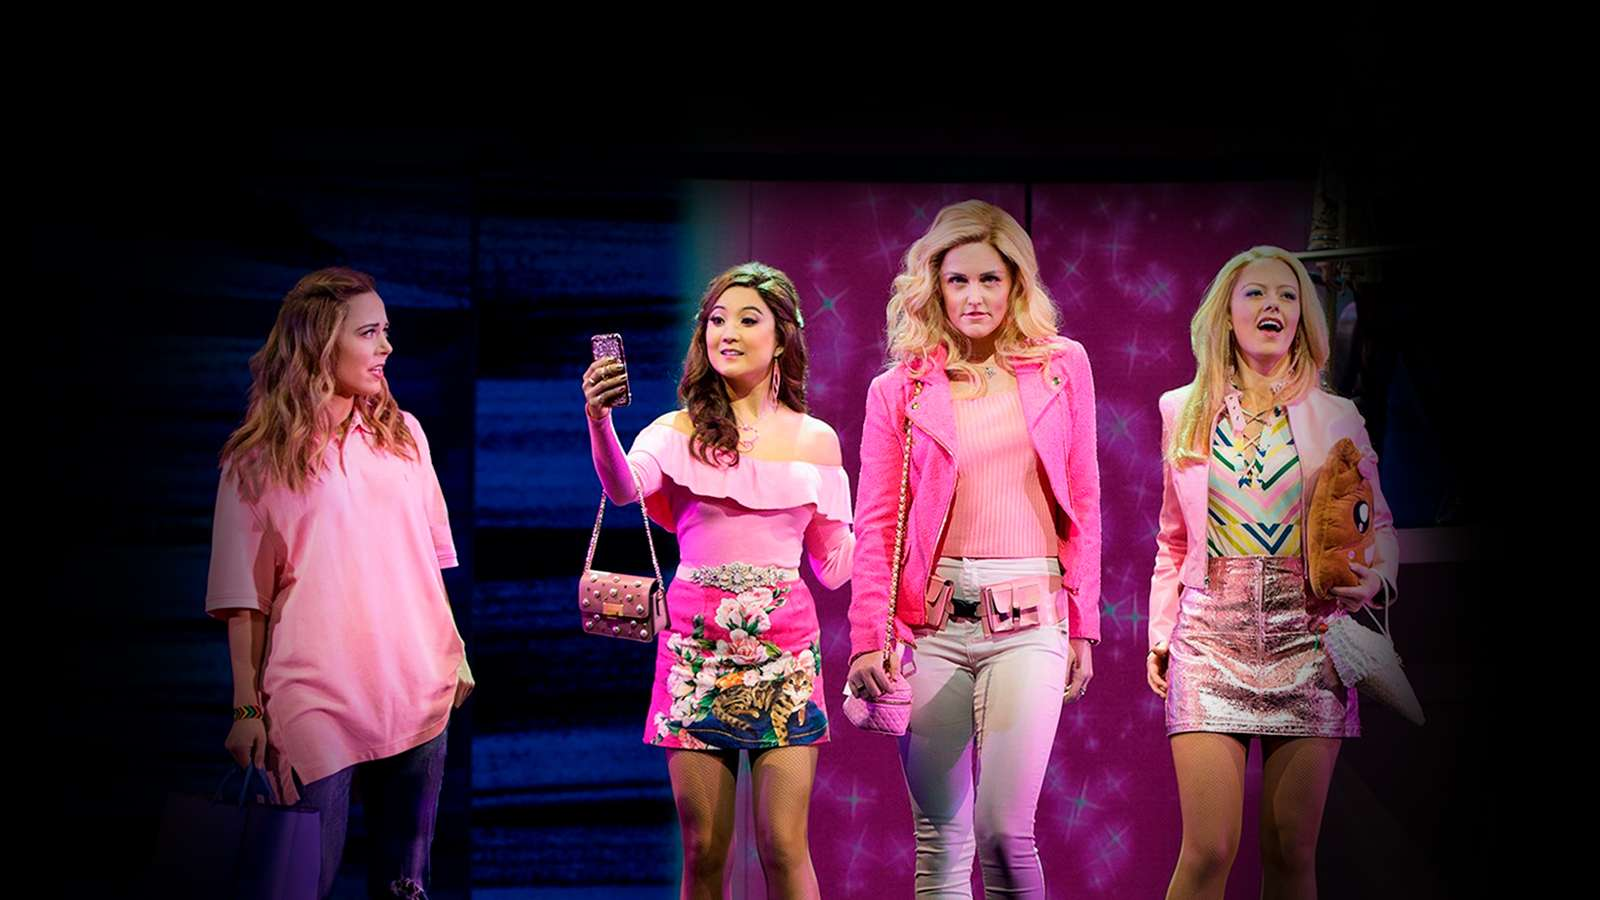 Mean Girls - The Musical (Rescheduled from 2/14/2021)